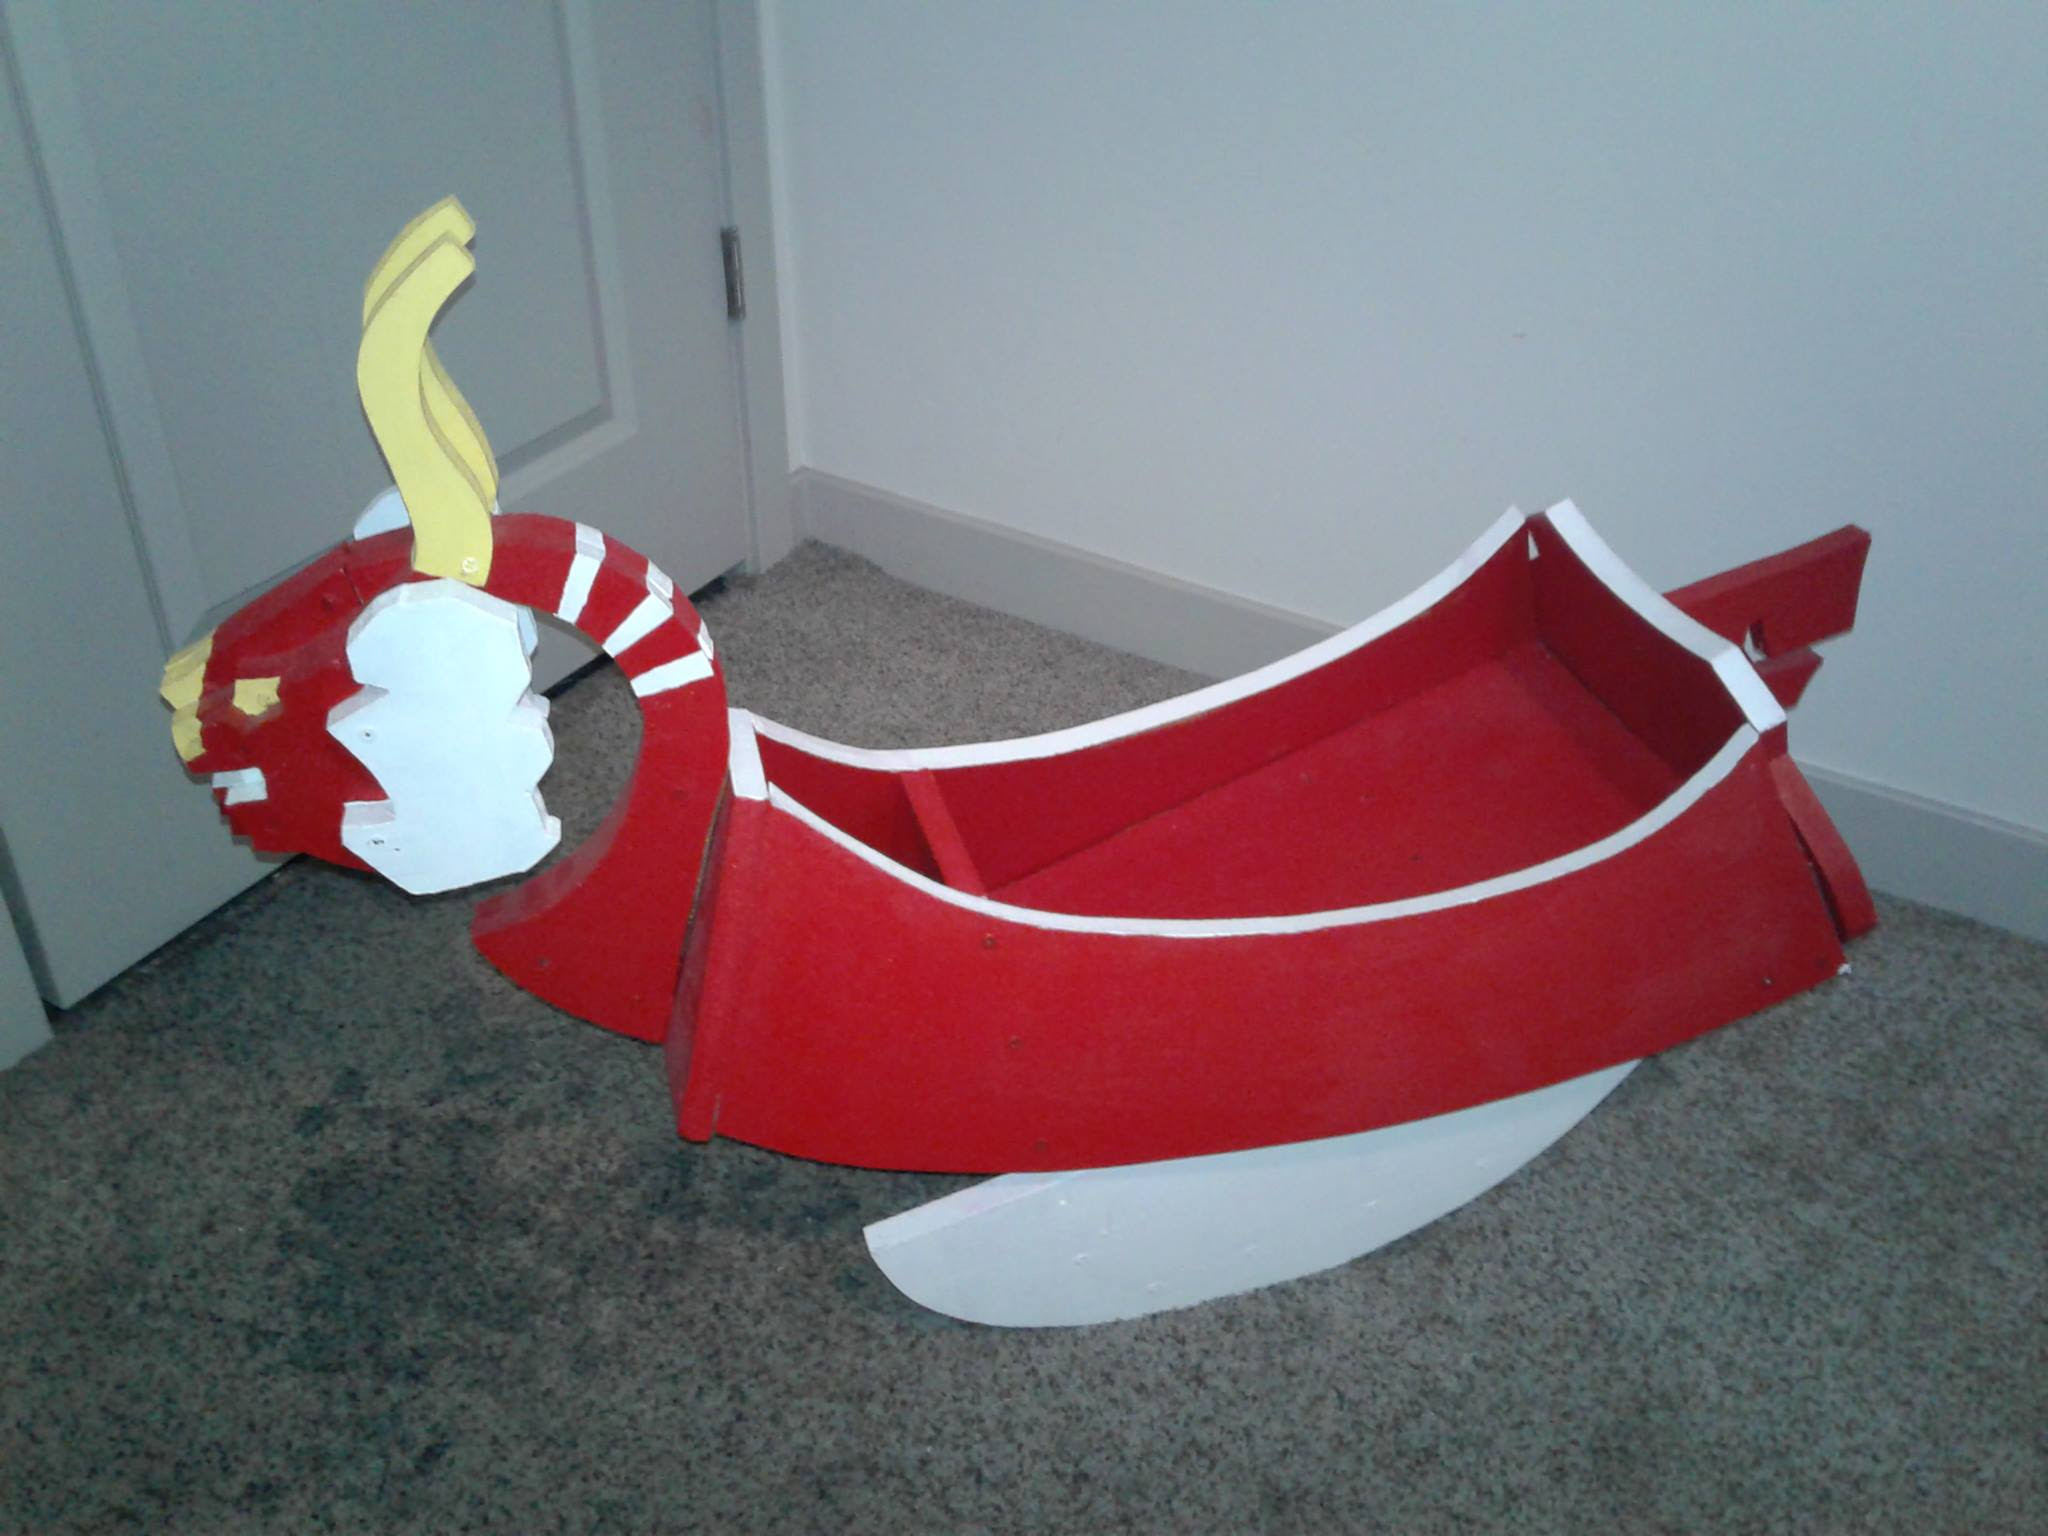 One amazing dad made this King of Red Lions Zelda rocking boat for his son screenshot